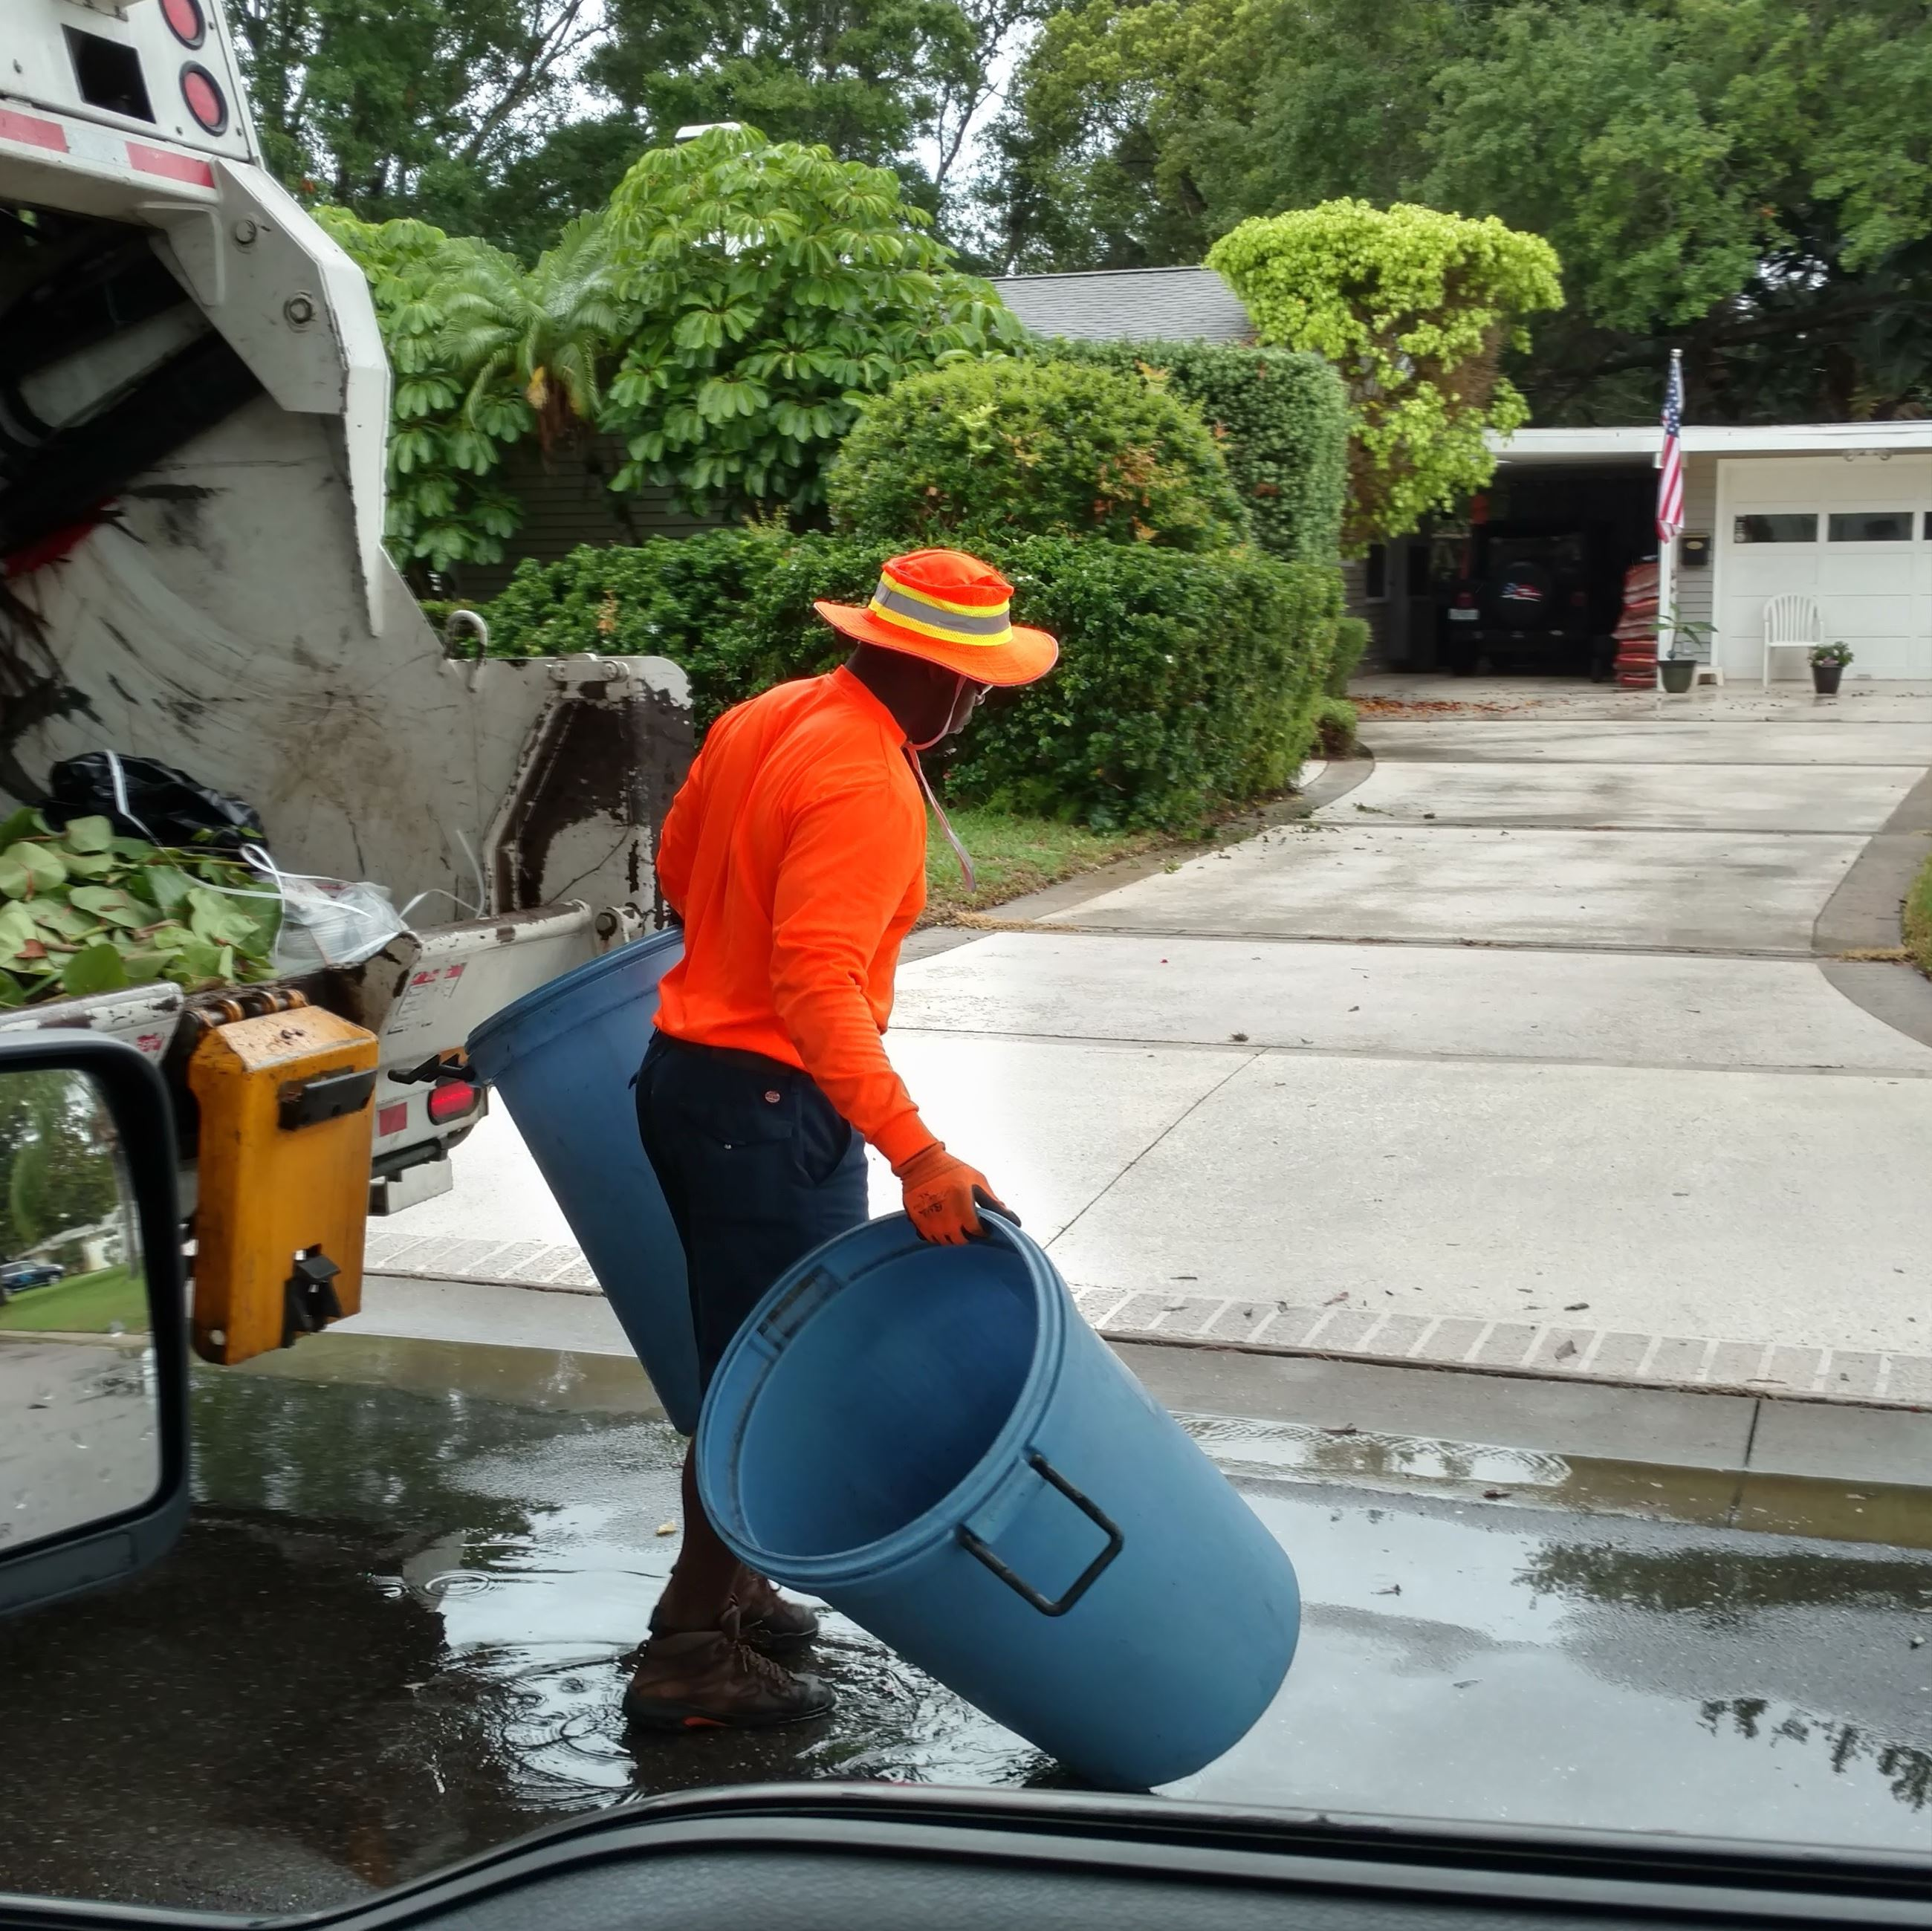 A solid waste employee empties trash into a truck on a rainy day in Belleair